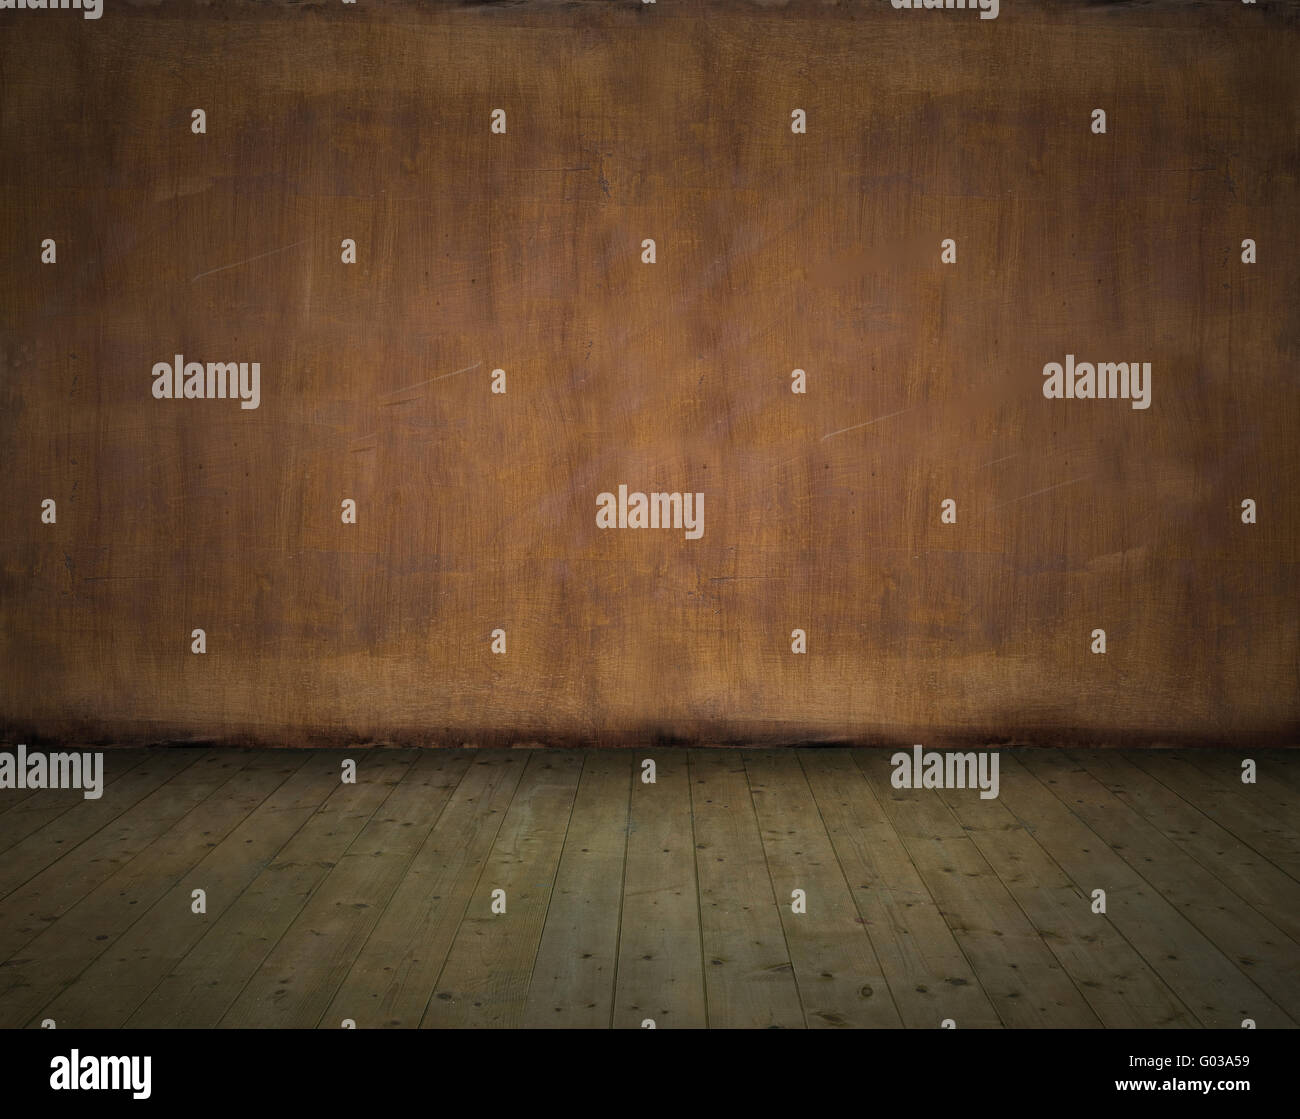 Grunge abstract empty room - interior background image - Stock Image